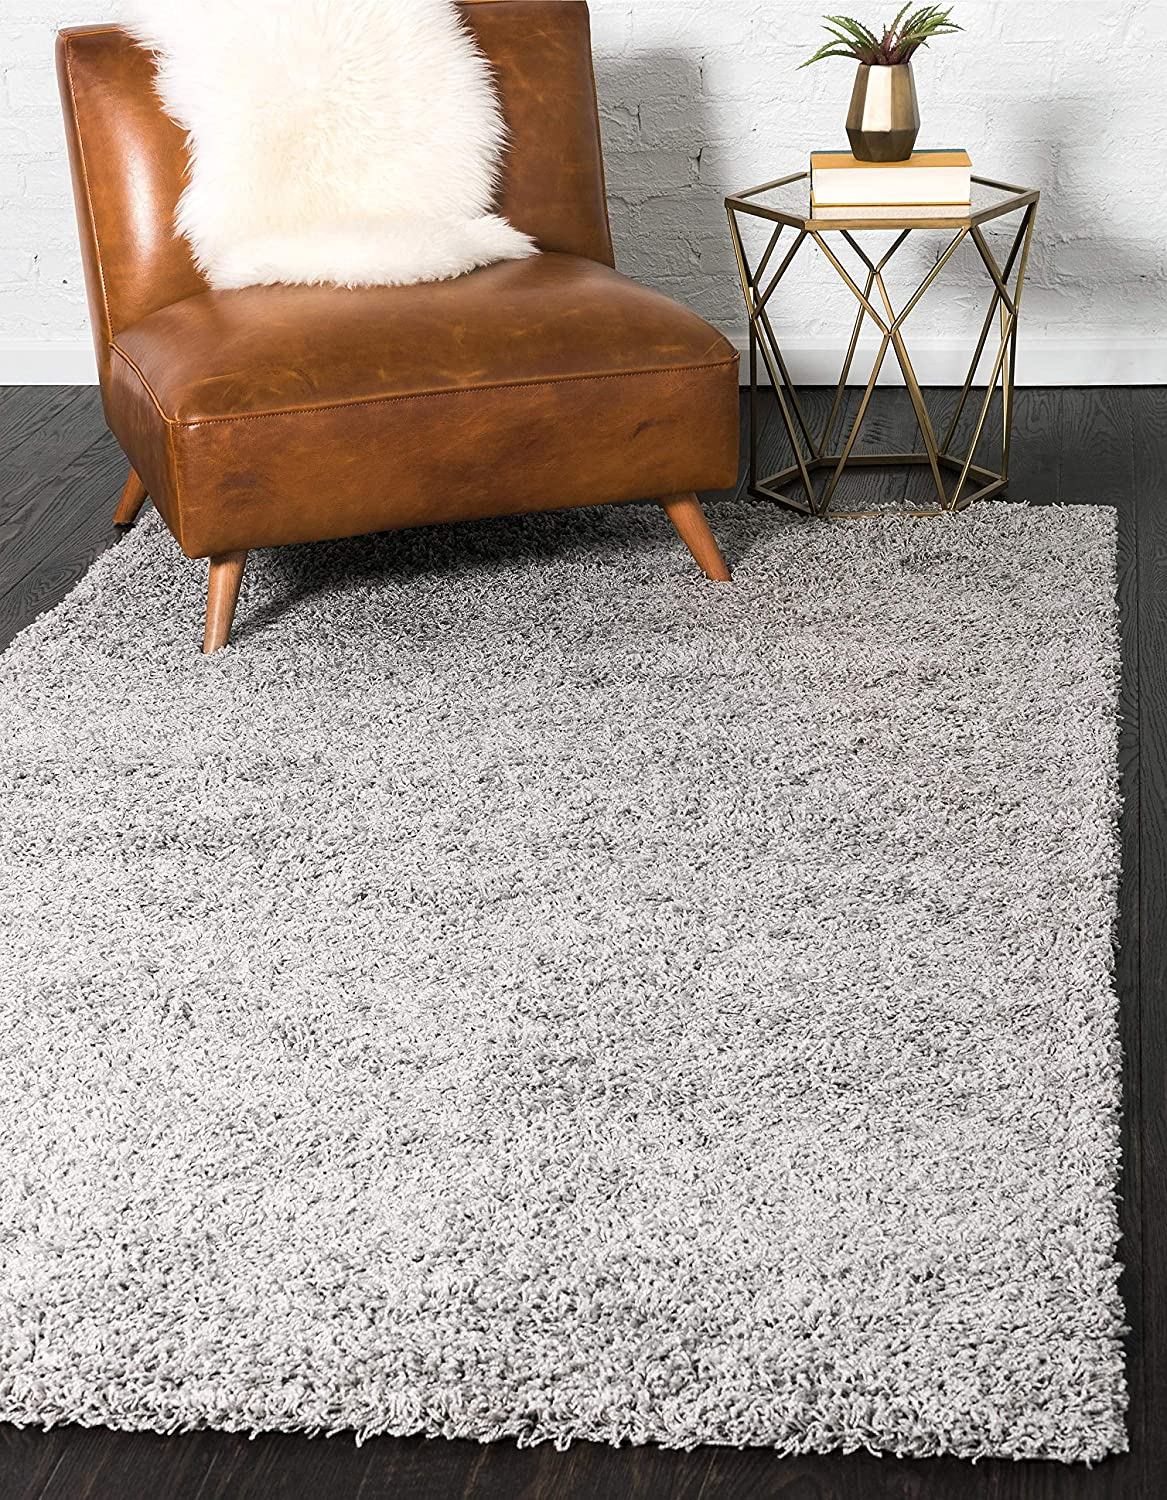 Unique Loom Solo Solid Shag Collection Modern Plush Cloud Gray Area Rug (4